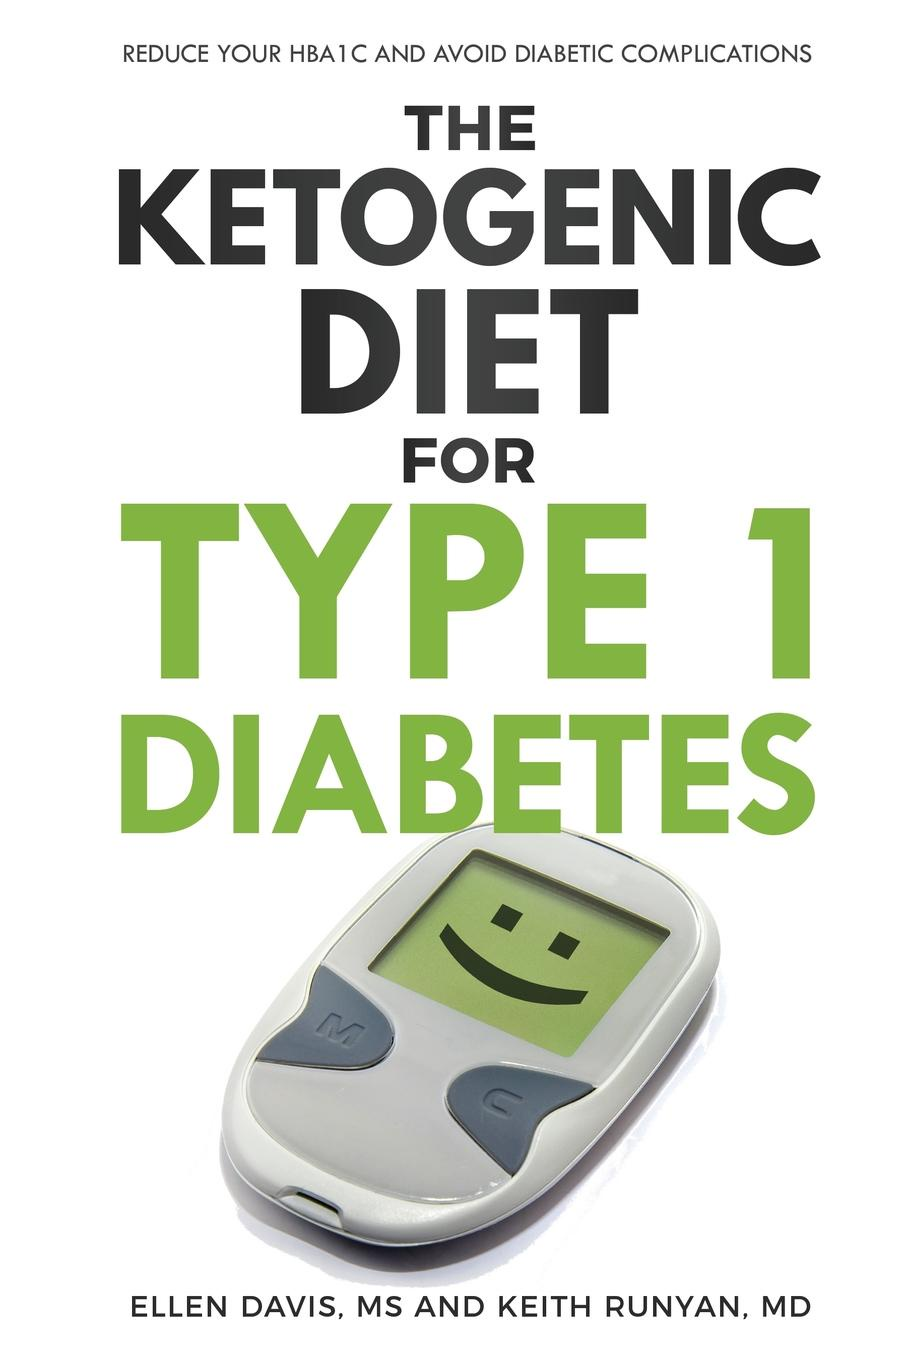 Ellen Davis, Keith Runyan The Ketogenic Diet for Type 1 Diabetes. Reduce Your HbA1c and Avoid Diabetic Complications eat right 4 your type